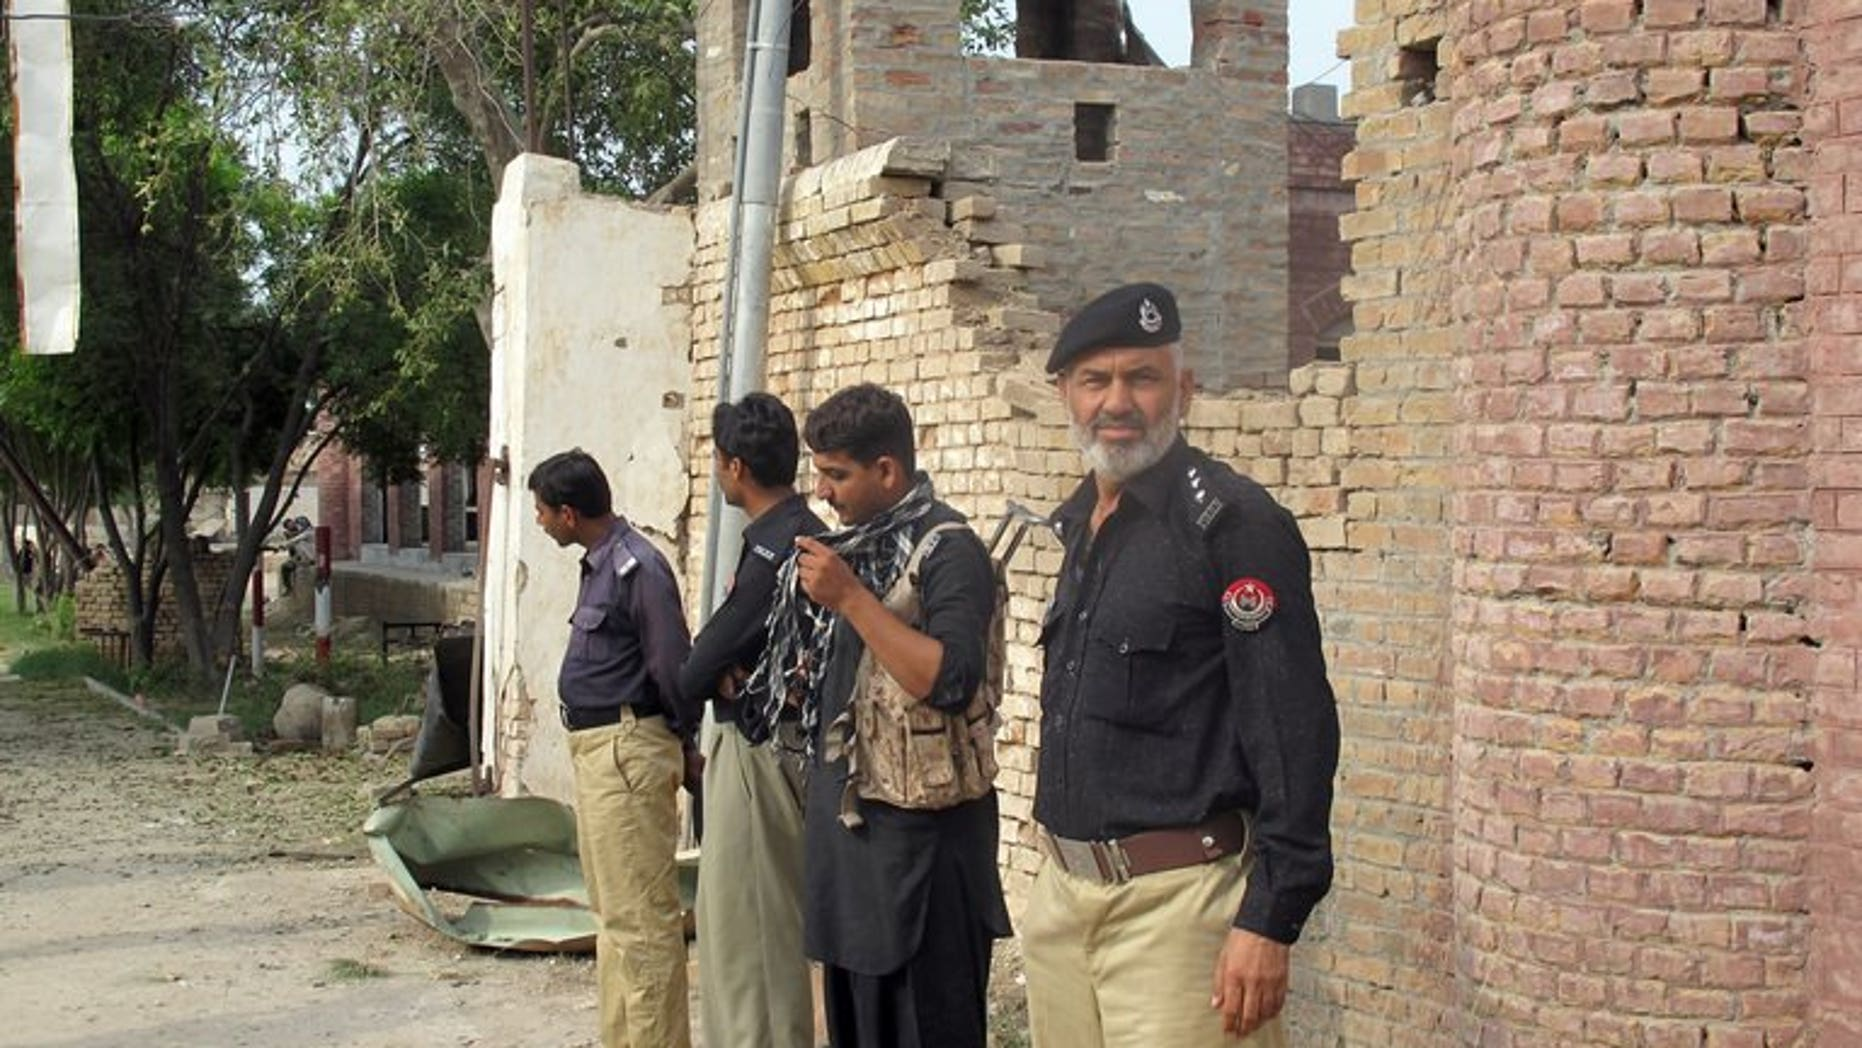 Pakistani policemen stand outside the Central Prison after an overnight armed Taliban militant attack in Dera Ismail Khan on July 30, 2013. The global police agency Interpol has said it suspected Al-Qaeda was involved in recent jailbreaks across nine countries, including Iraq, Libya and Pakistan.